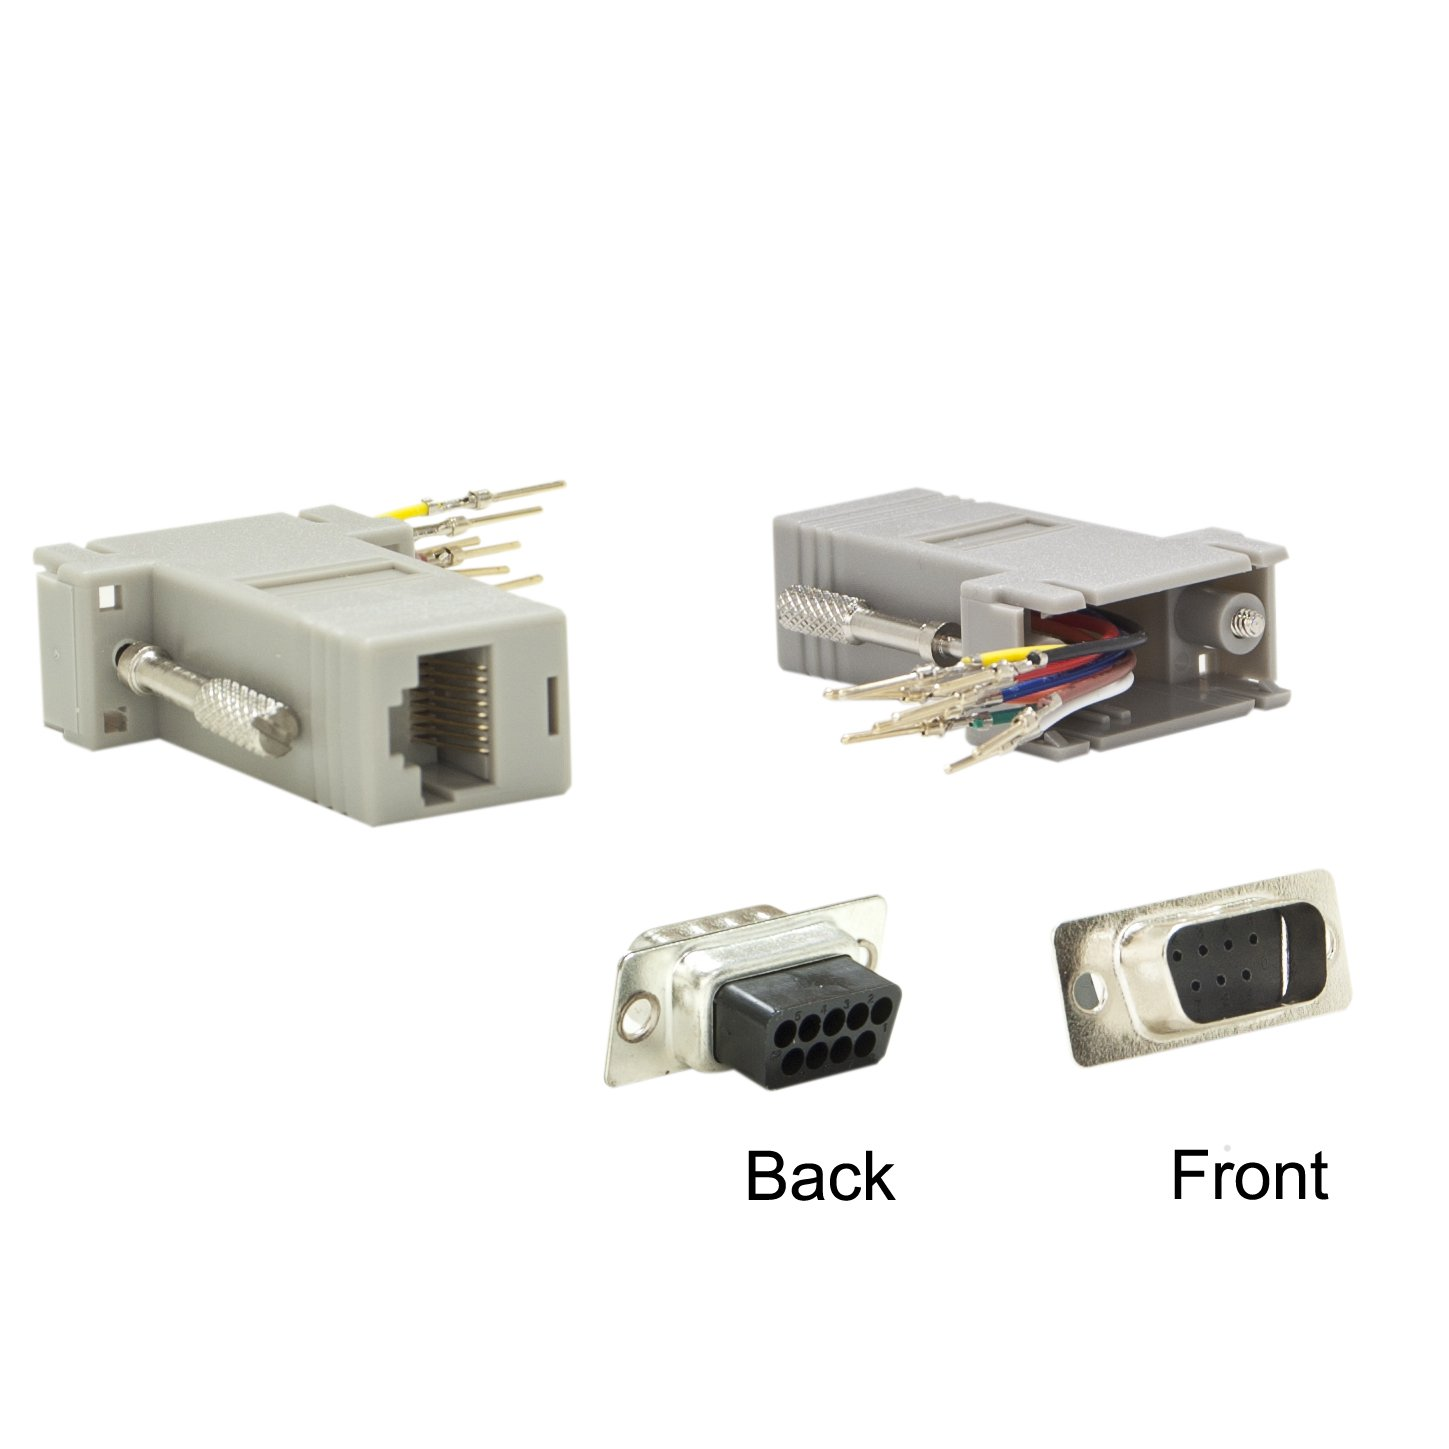 ACL DB9 Male to RJ45 Jack Modular Adapter, Gray, 50 Pack by ACL